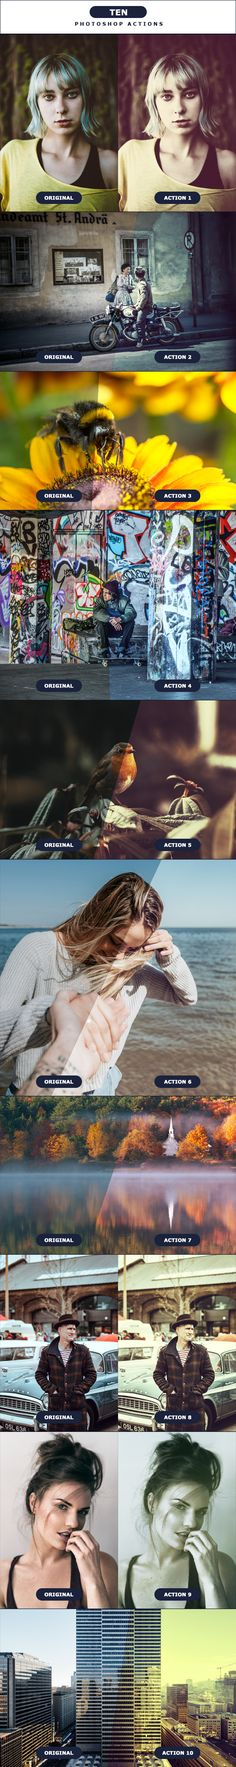 TEN - Photoshop Actions 2 - Photo Effects Actions